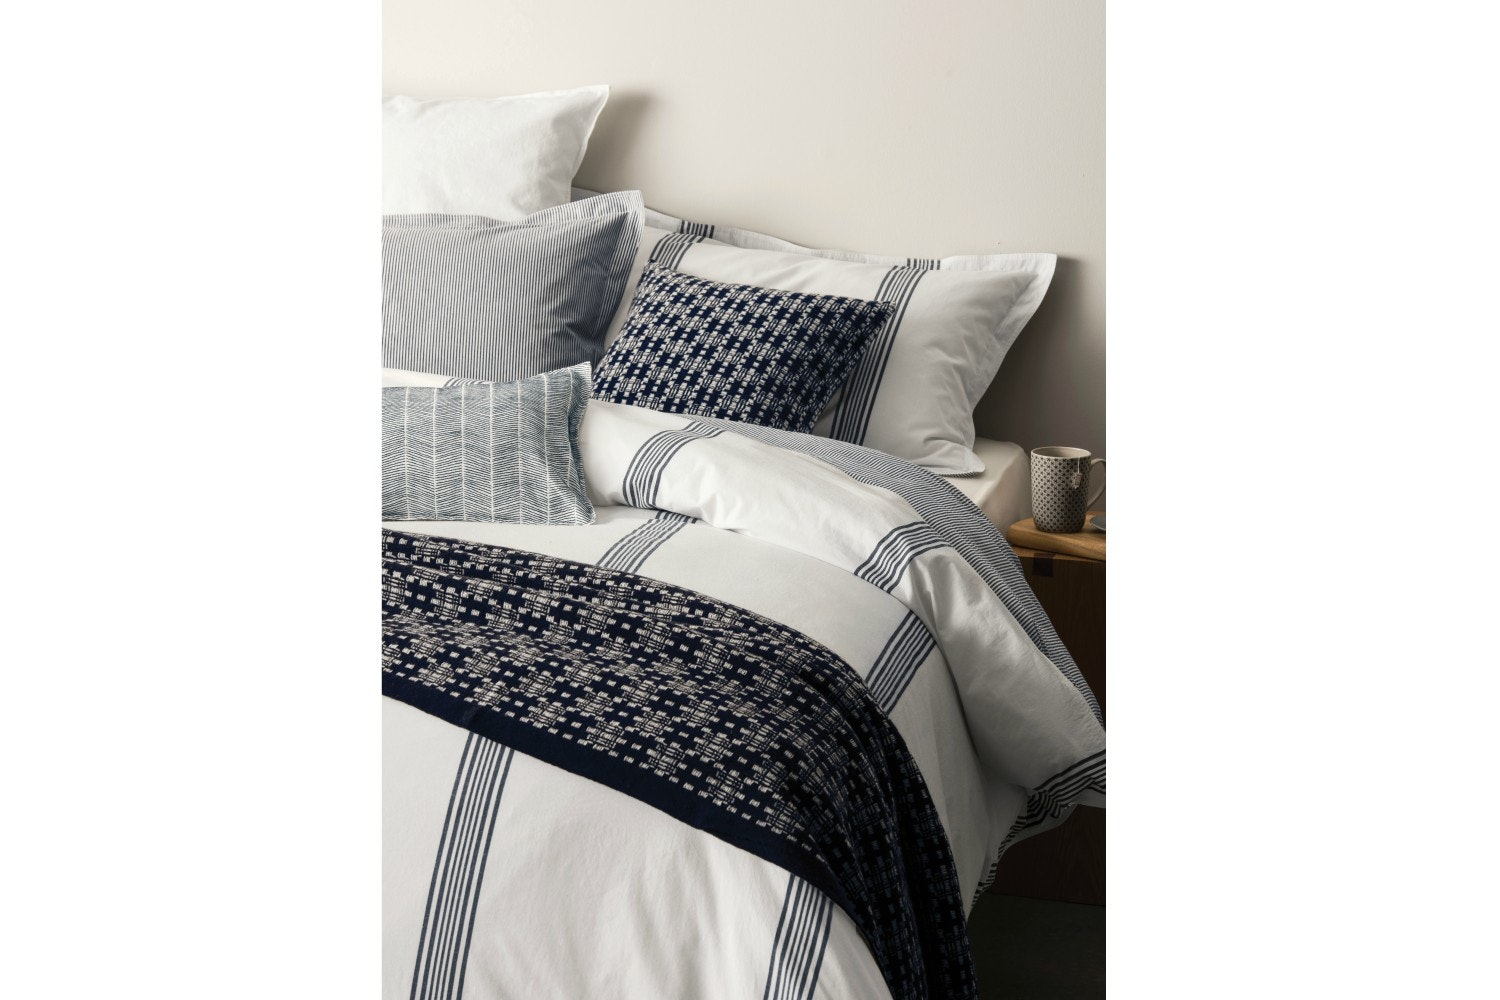 Murmur Broad Stripe Superking Duvet Cover White & Indigo